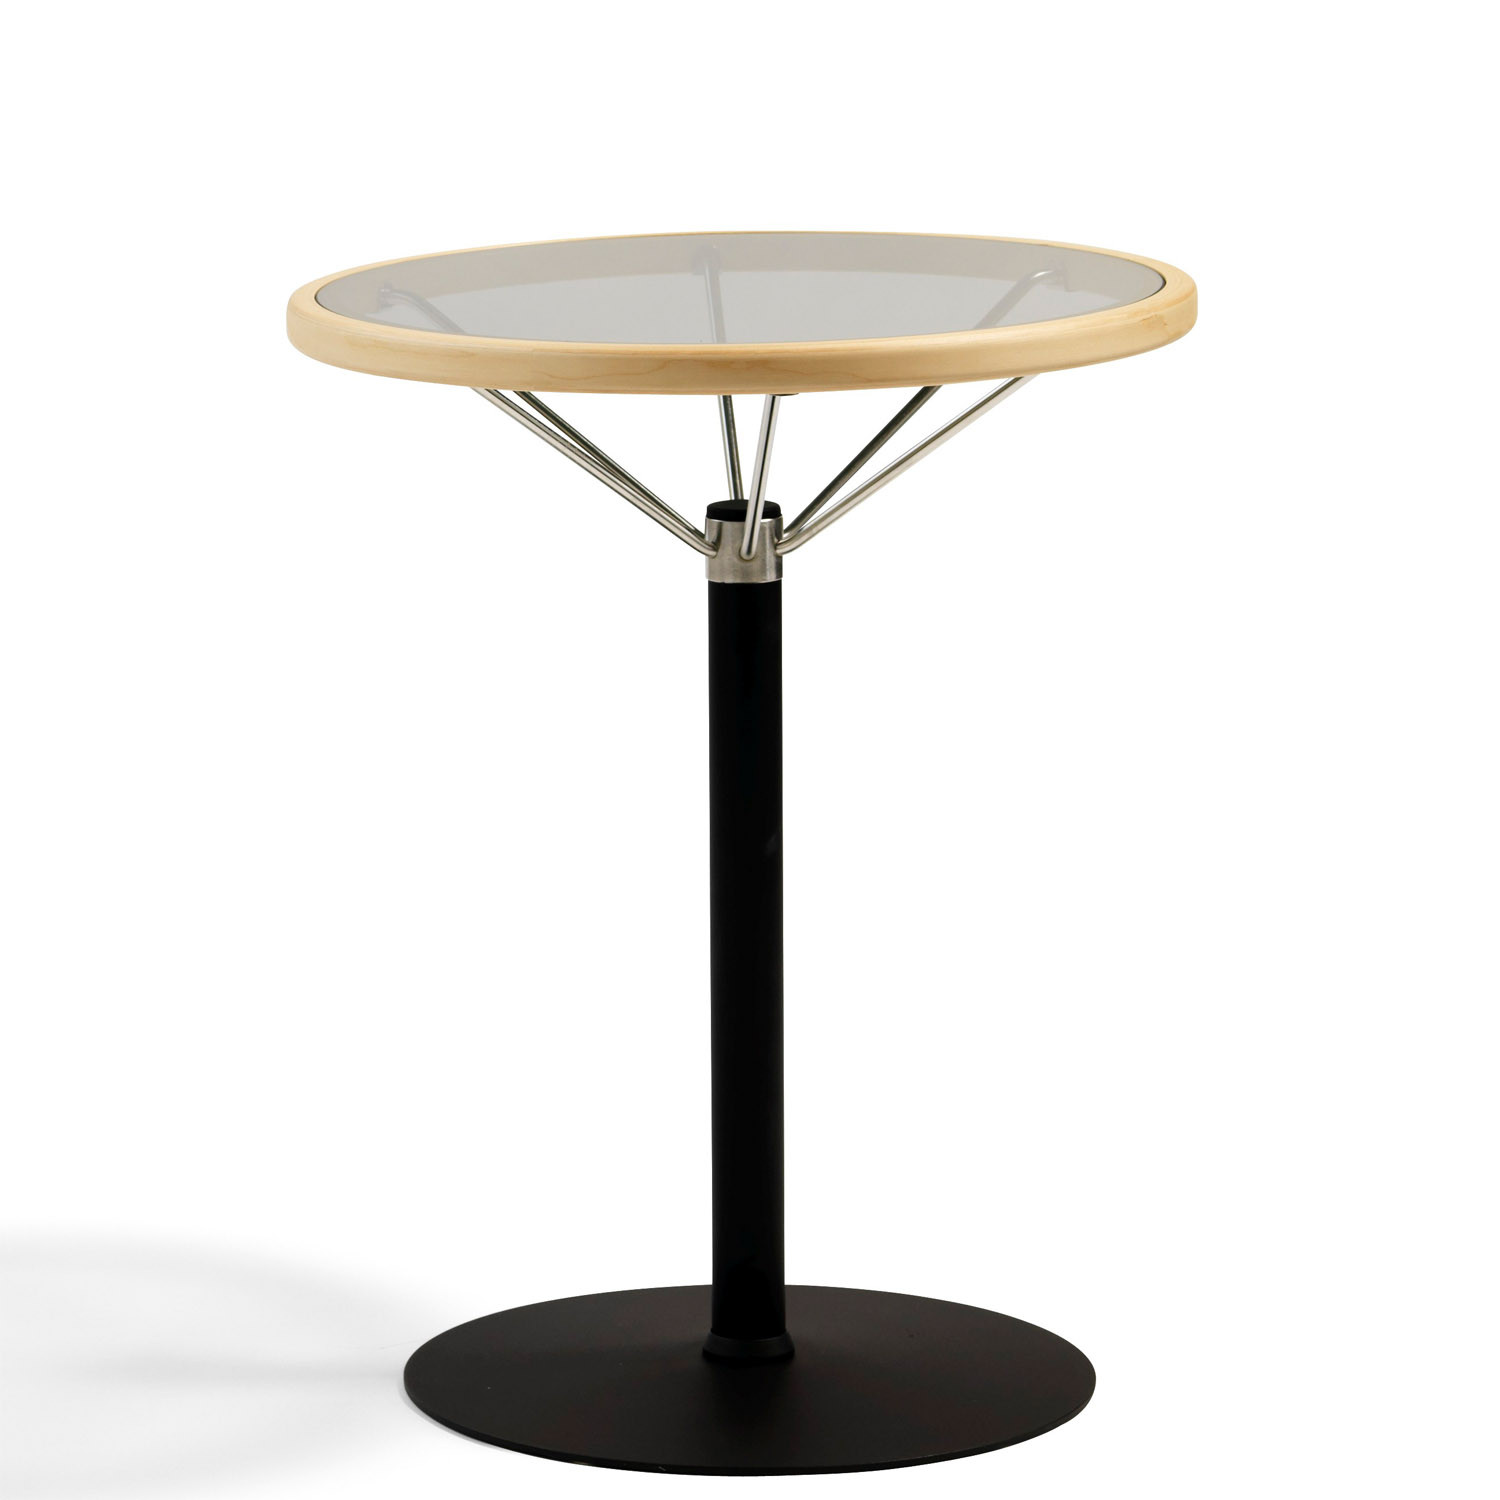 L1 Glass Top Table with steel pedestal and base